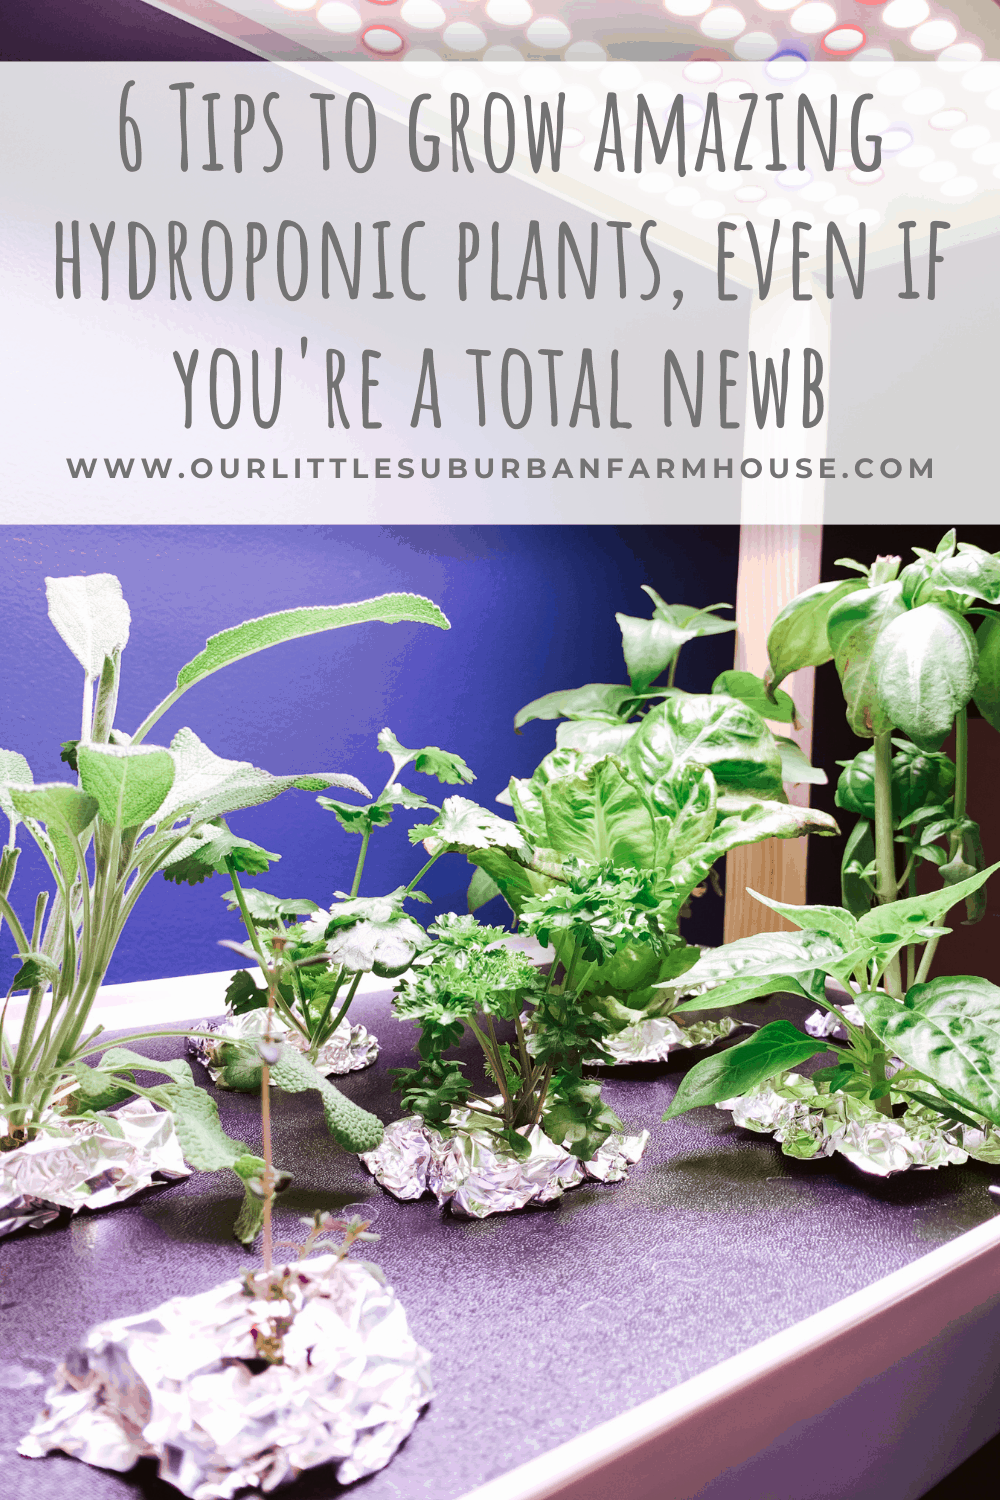 6 Tips to grow amazing hydroponic plants, even if you're a total newb